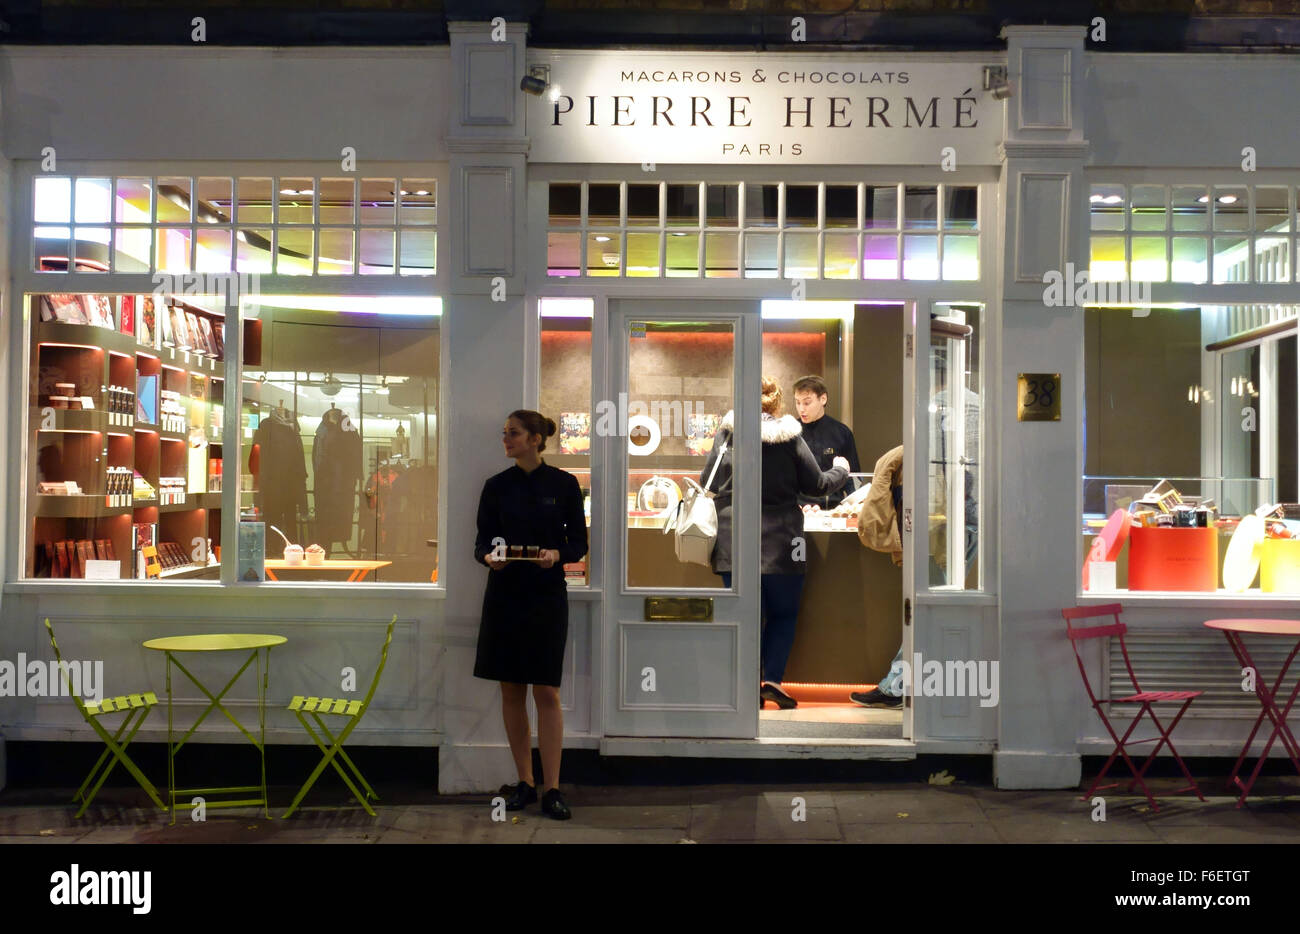 Pierre Herme of Paris chocolate and macaroons shop, Covent Garden, London - Stock Image